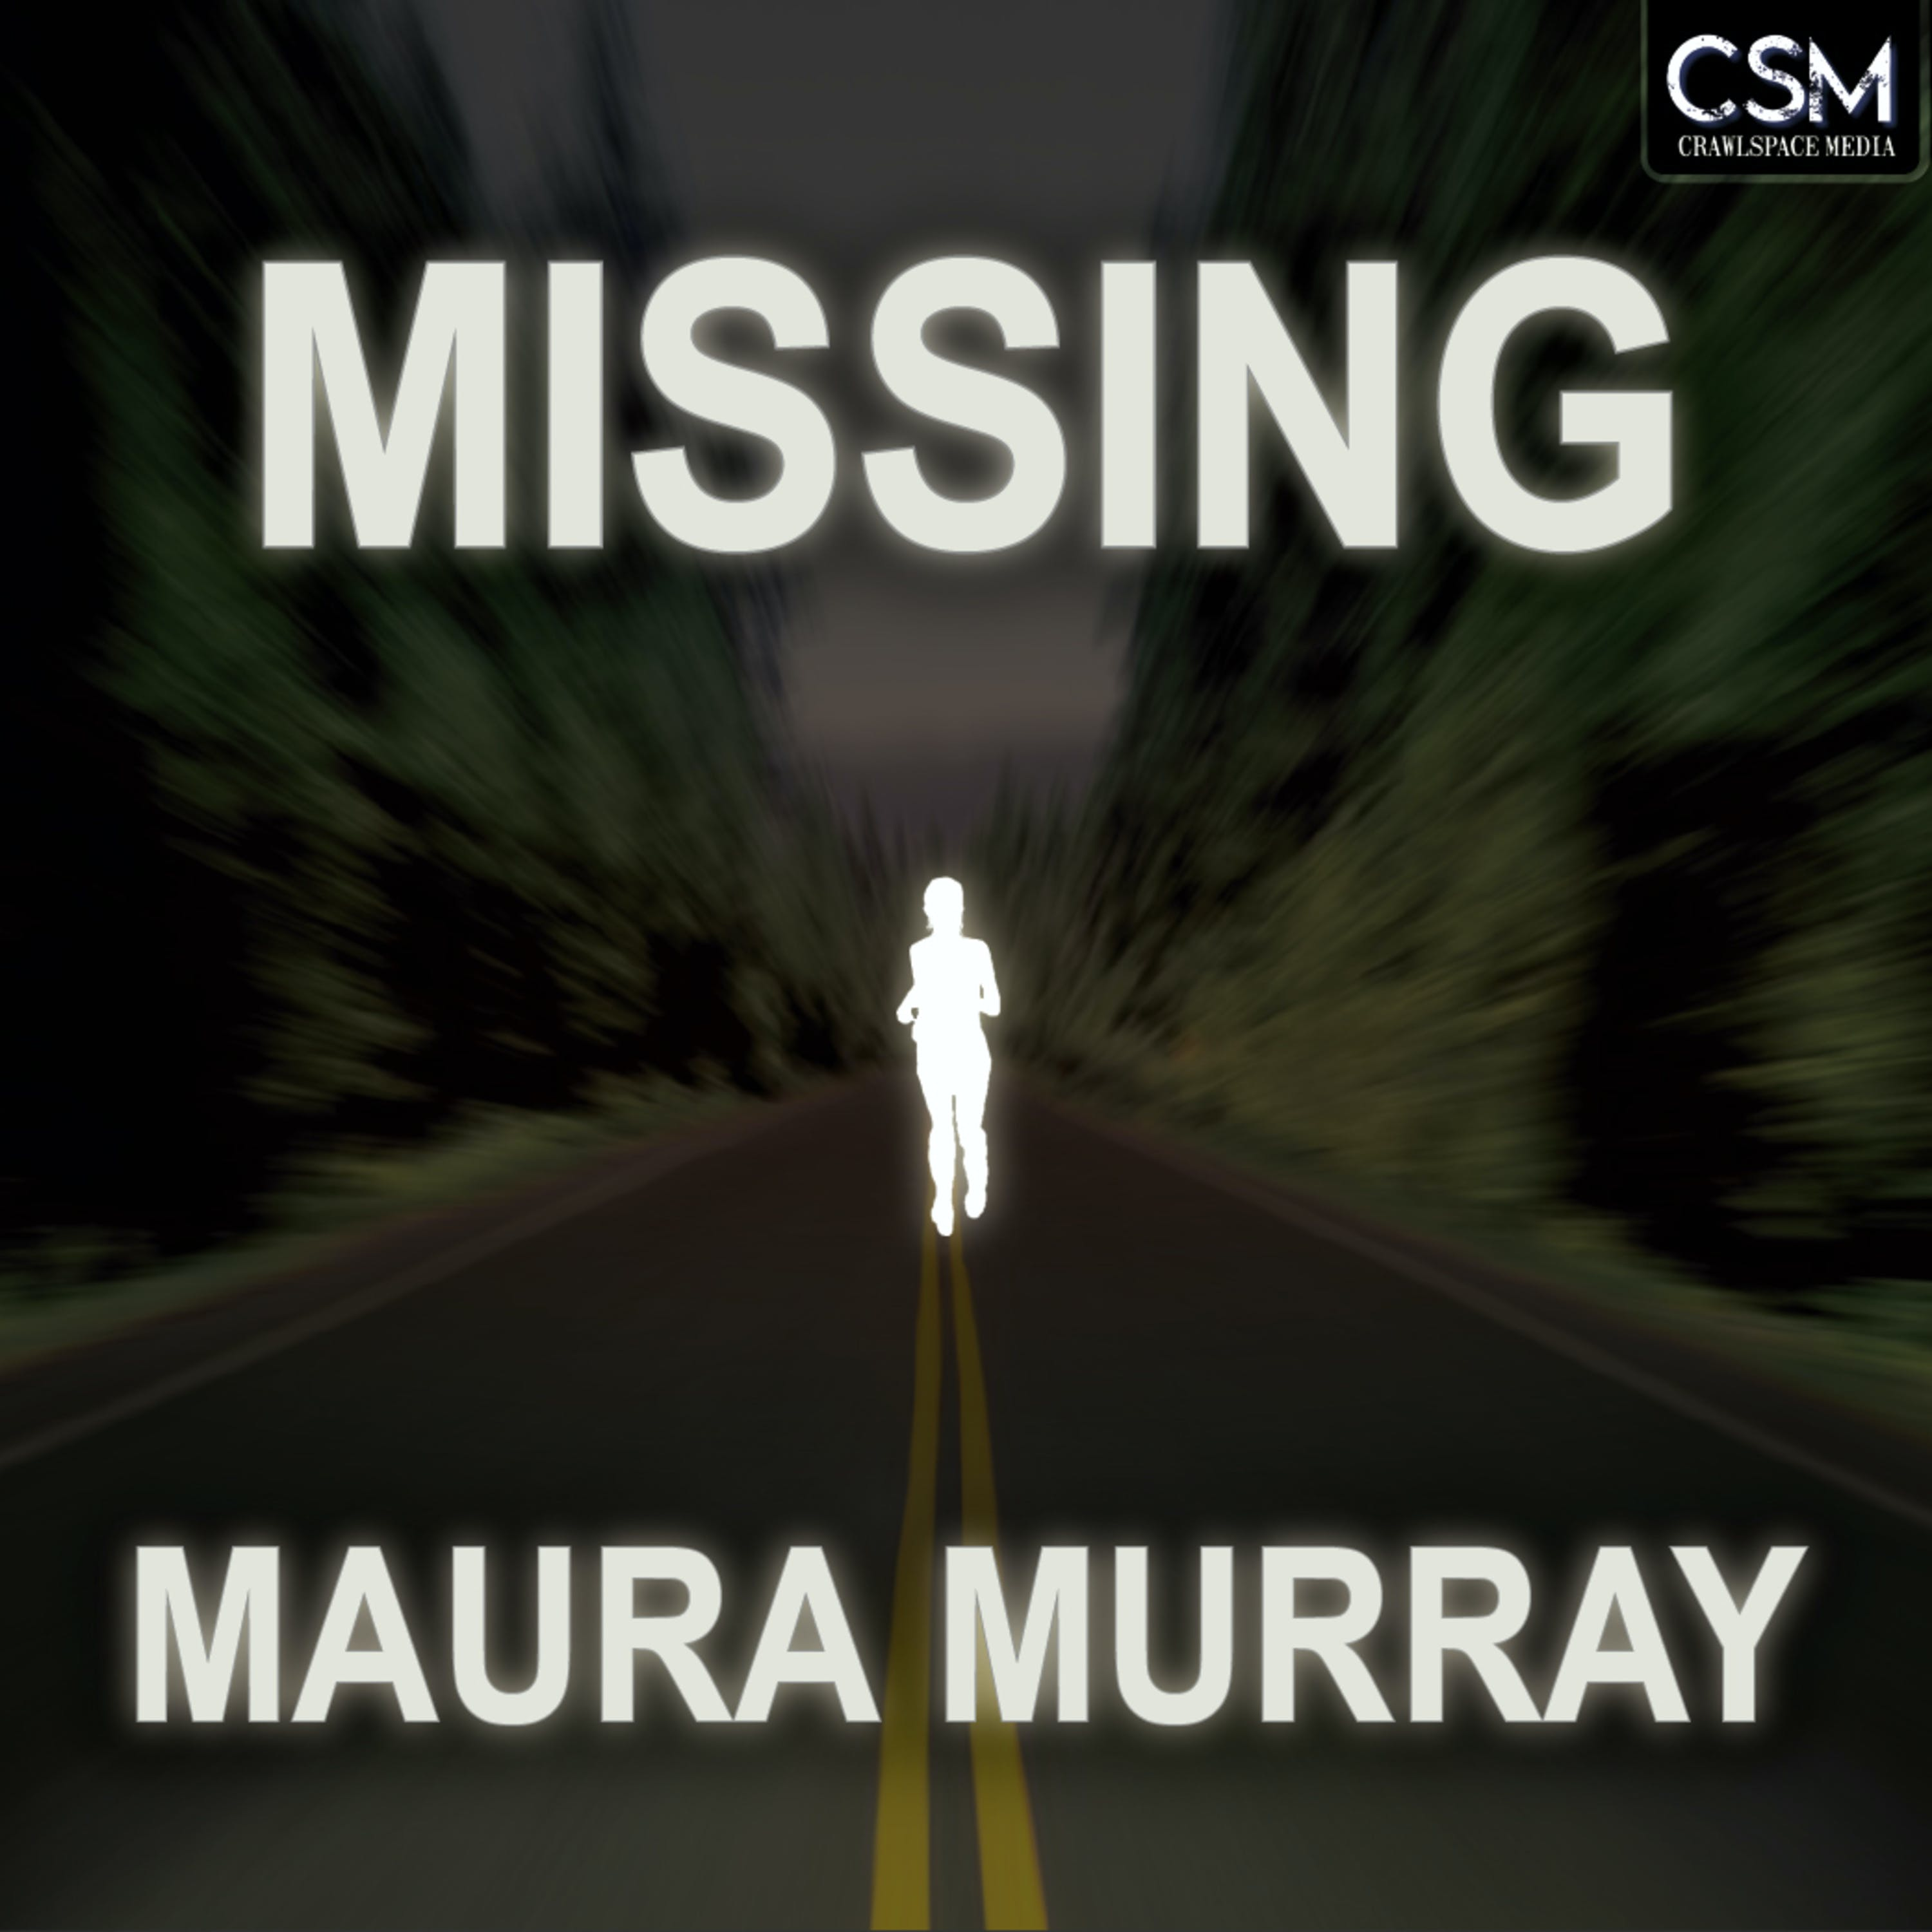 Missing Maura Murray - 141 - Twisty Mysteries w/ James Renner